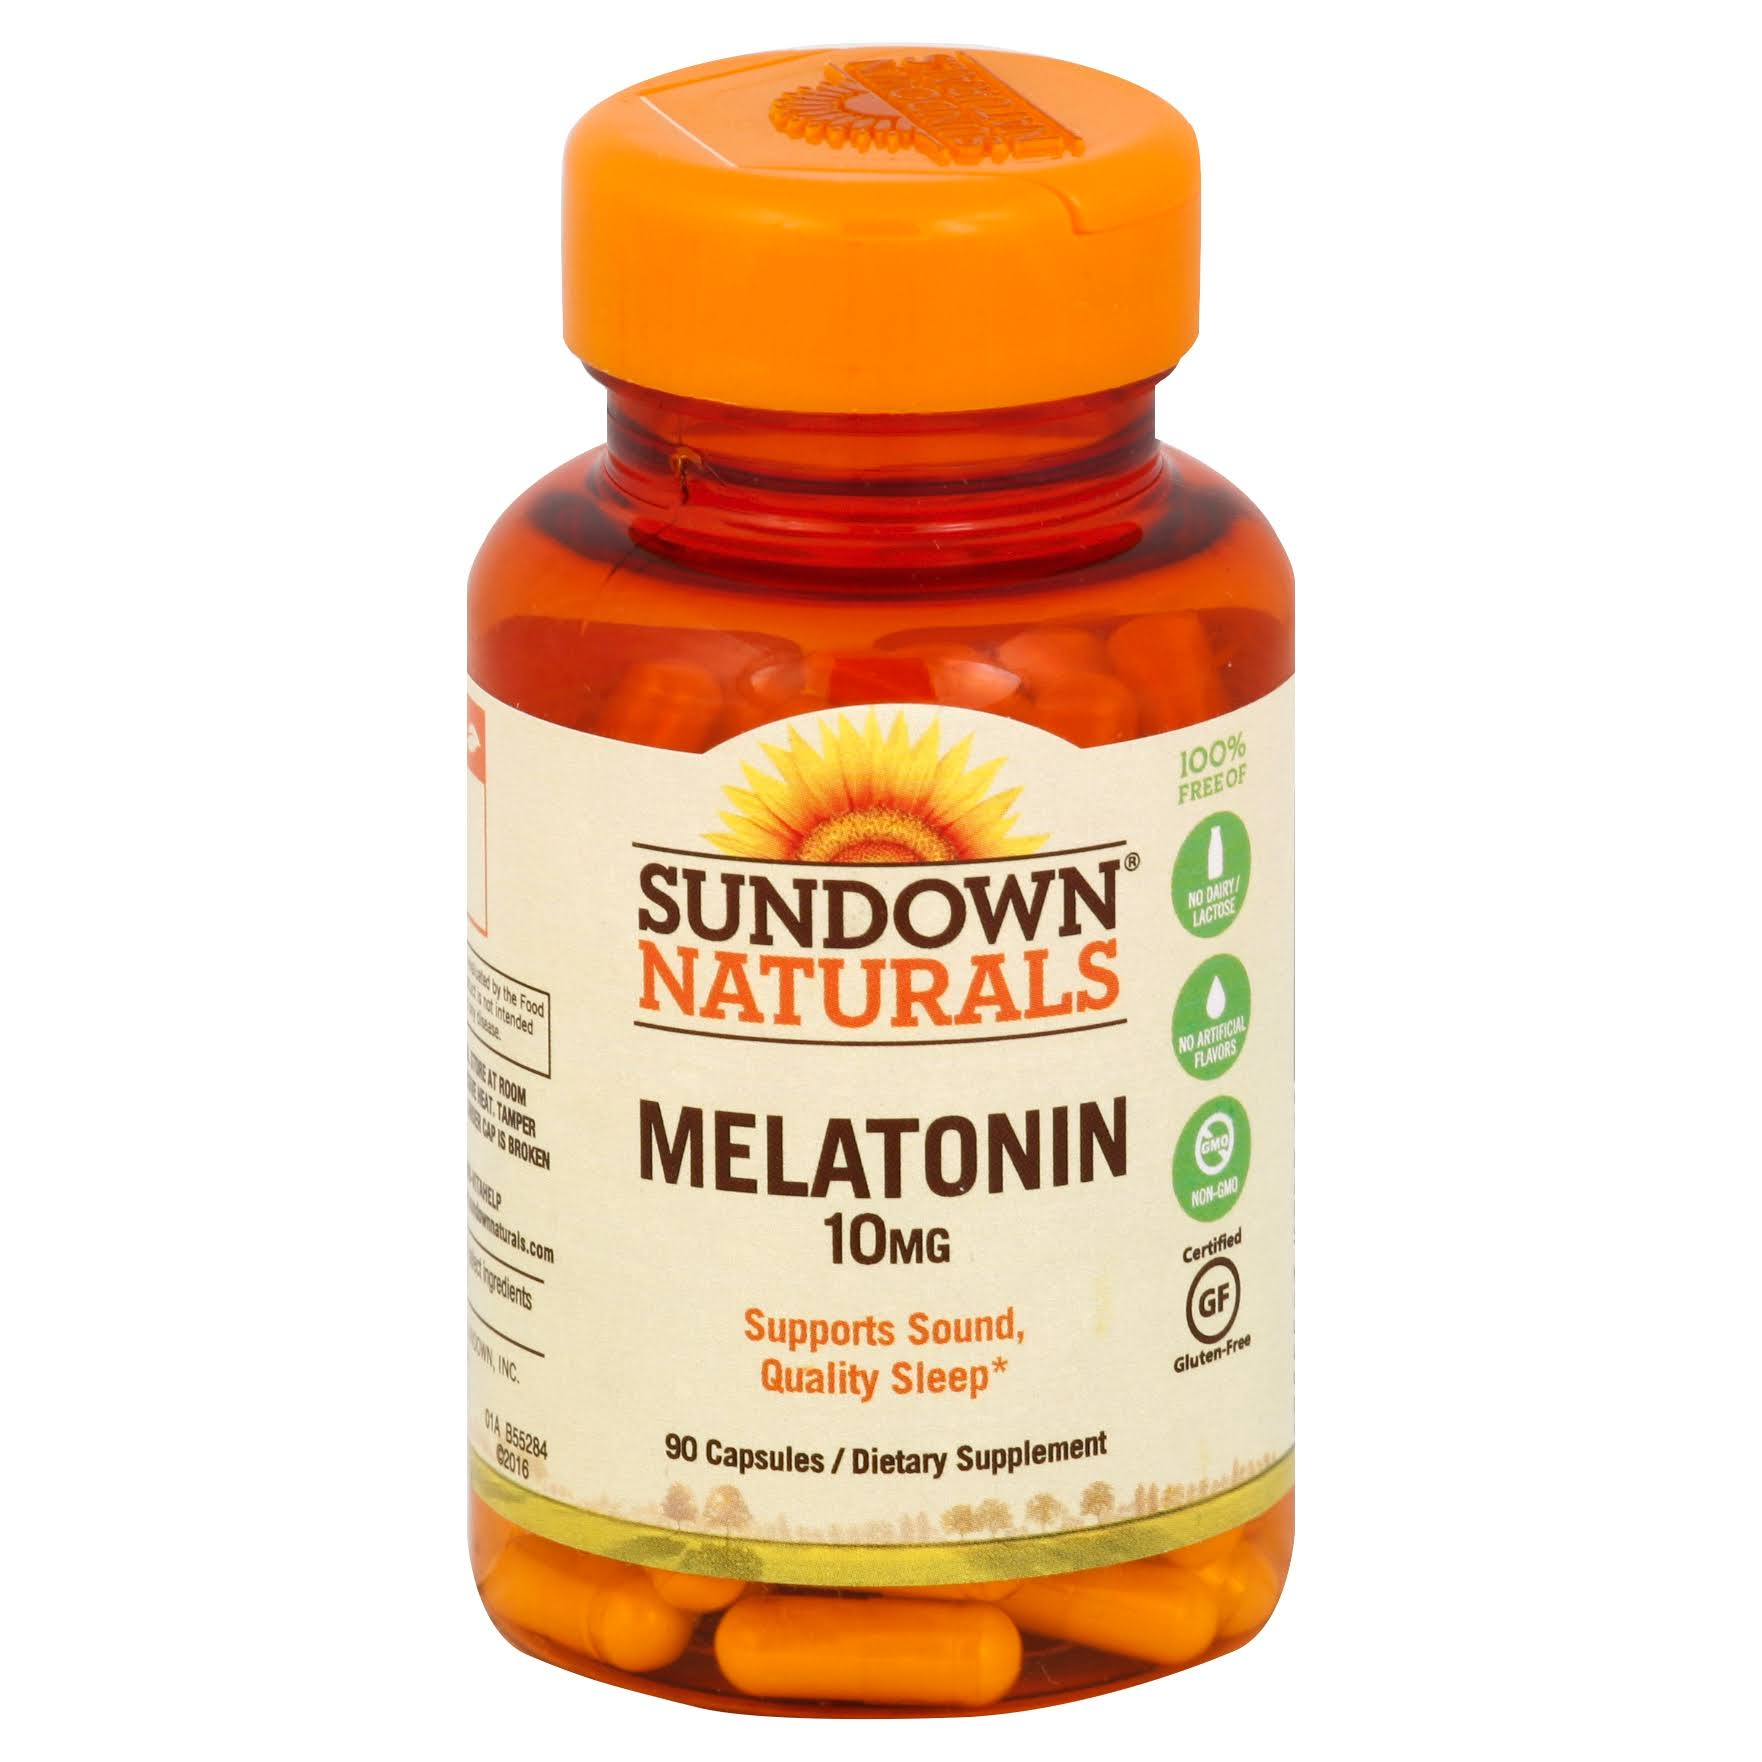 Sundown Naturals Melatonin - 10mg, x90